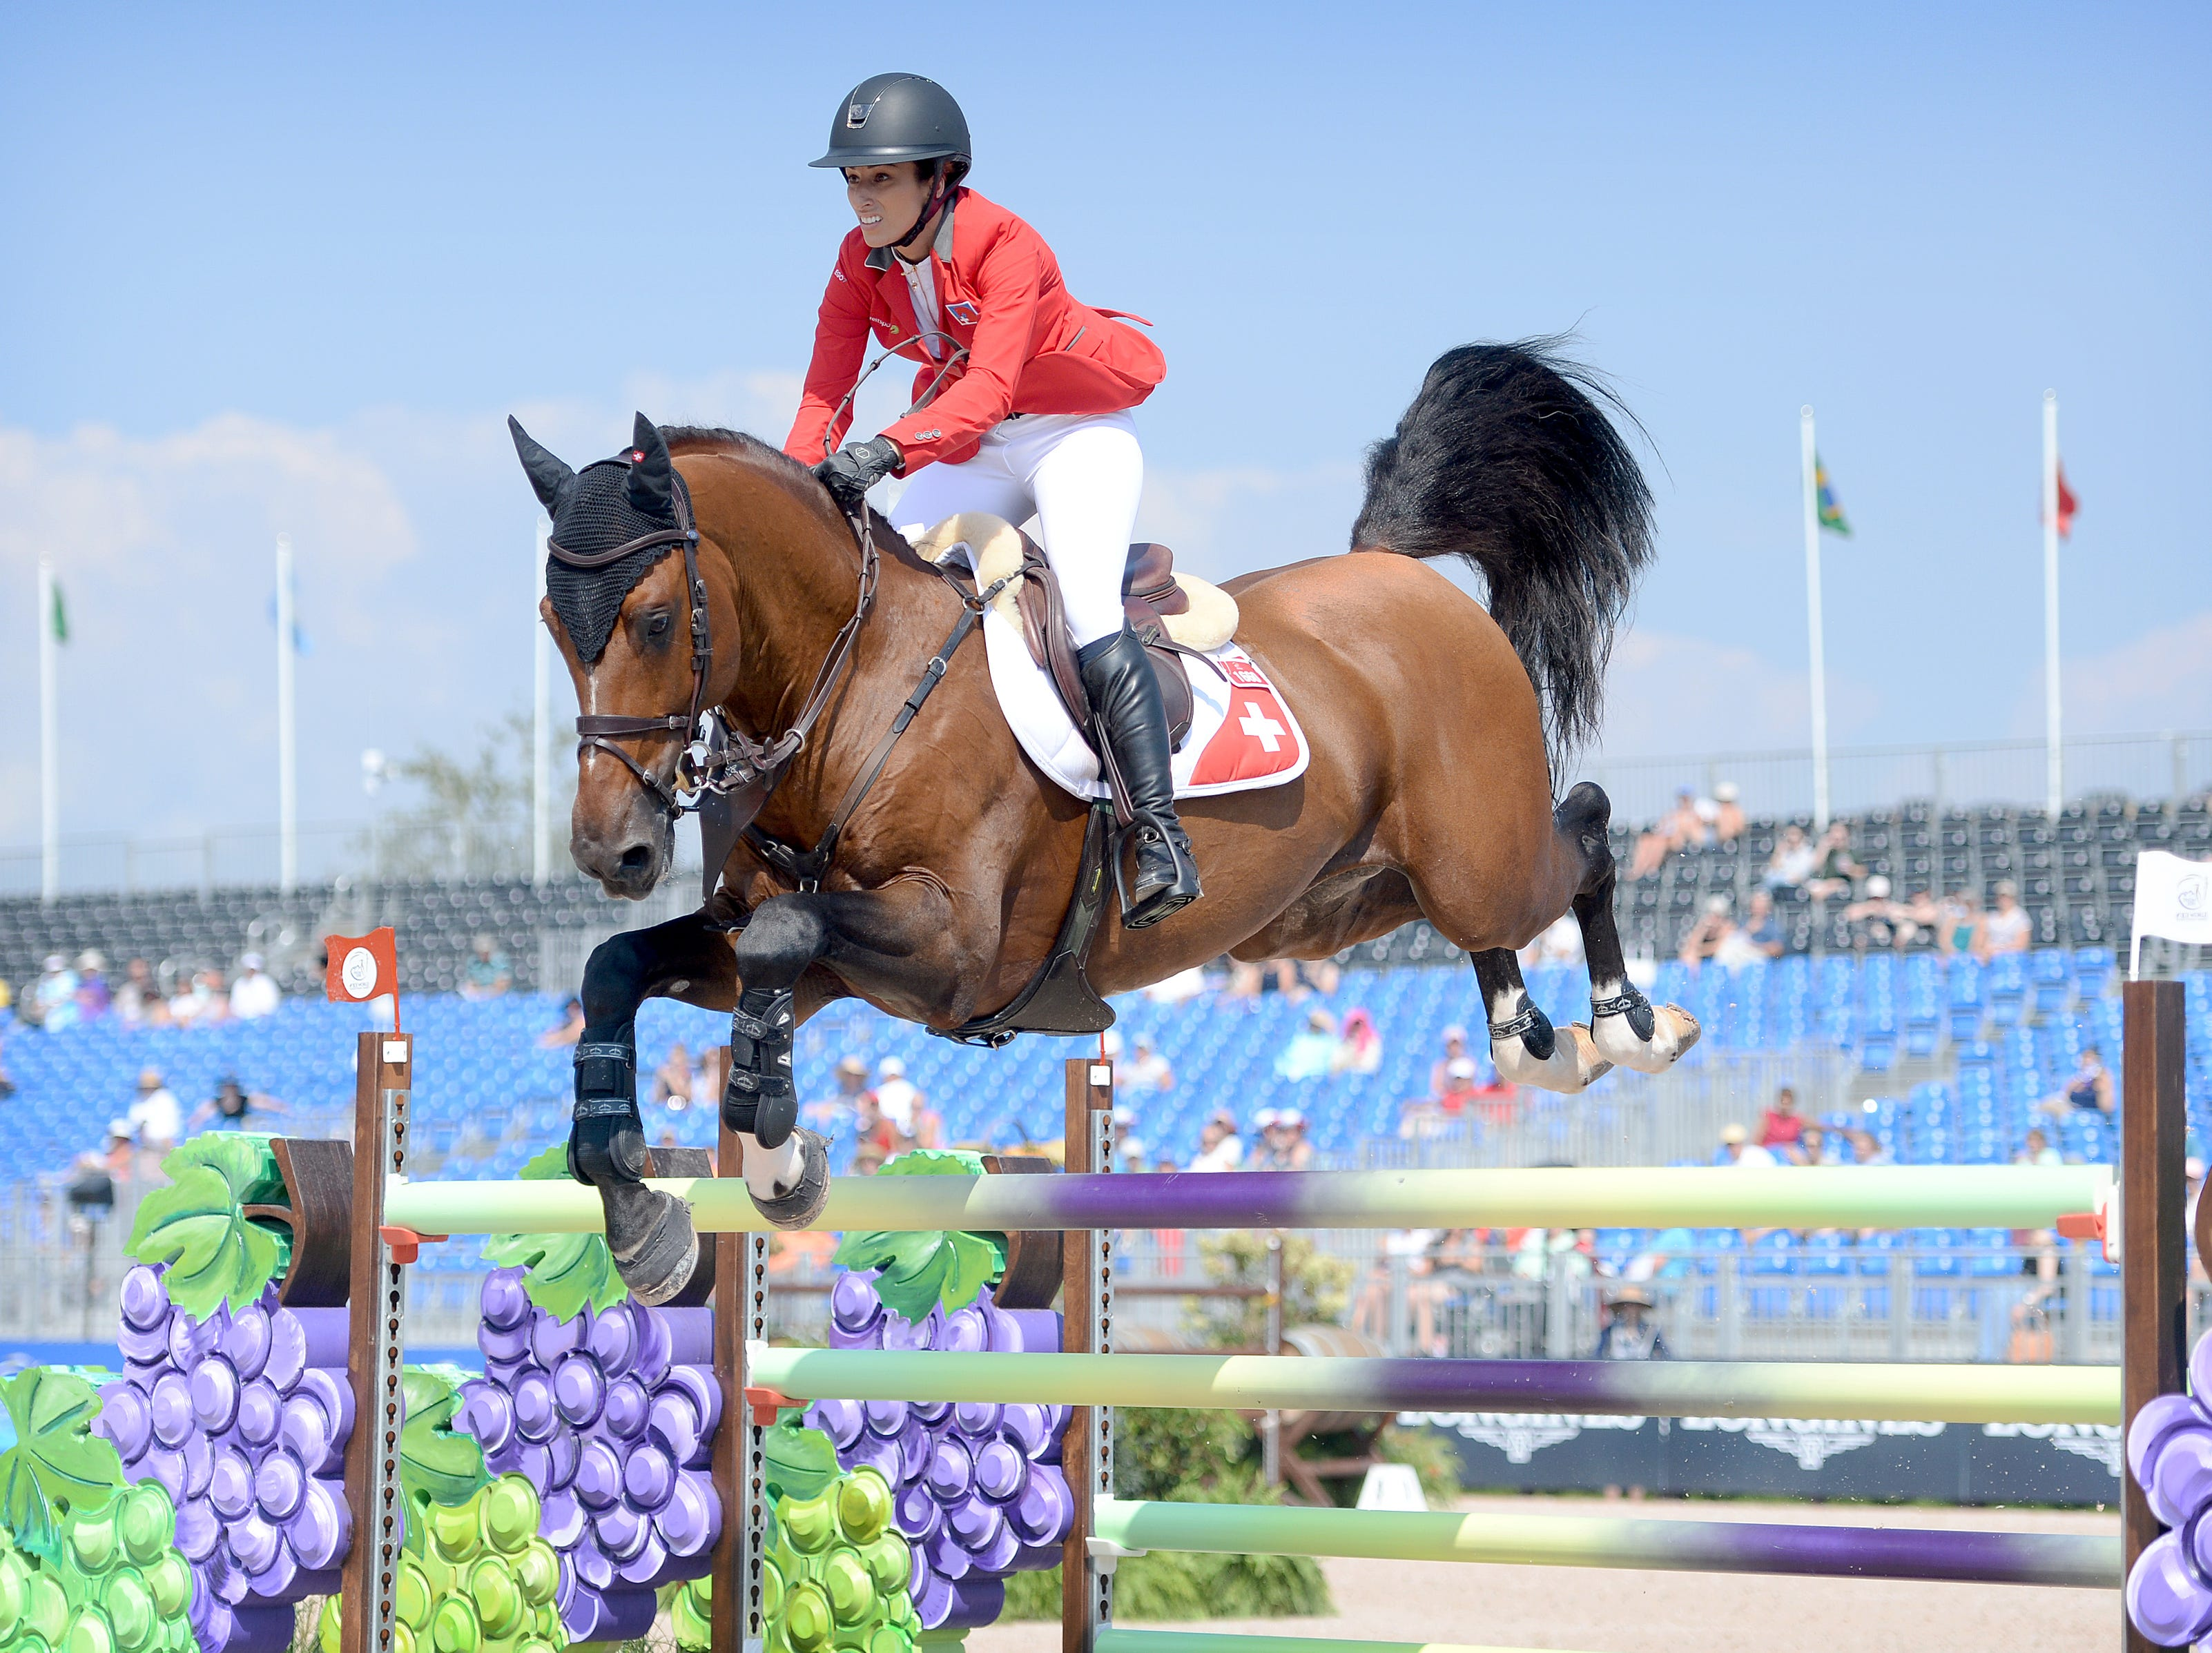 Switzerland's Janika Sprunger, on Bacardi VDL, competes in the team jumping competition at the FEI World Equestrian Games at the Tryon International Equestrian Center on Sept. 20, 2018.